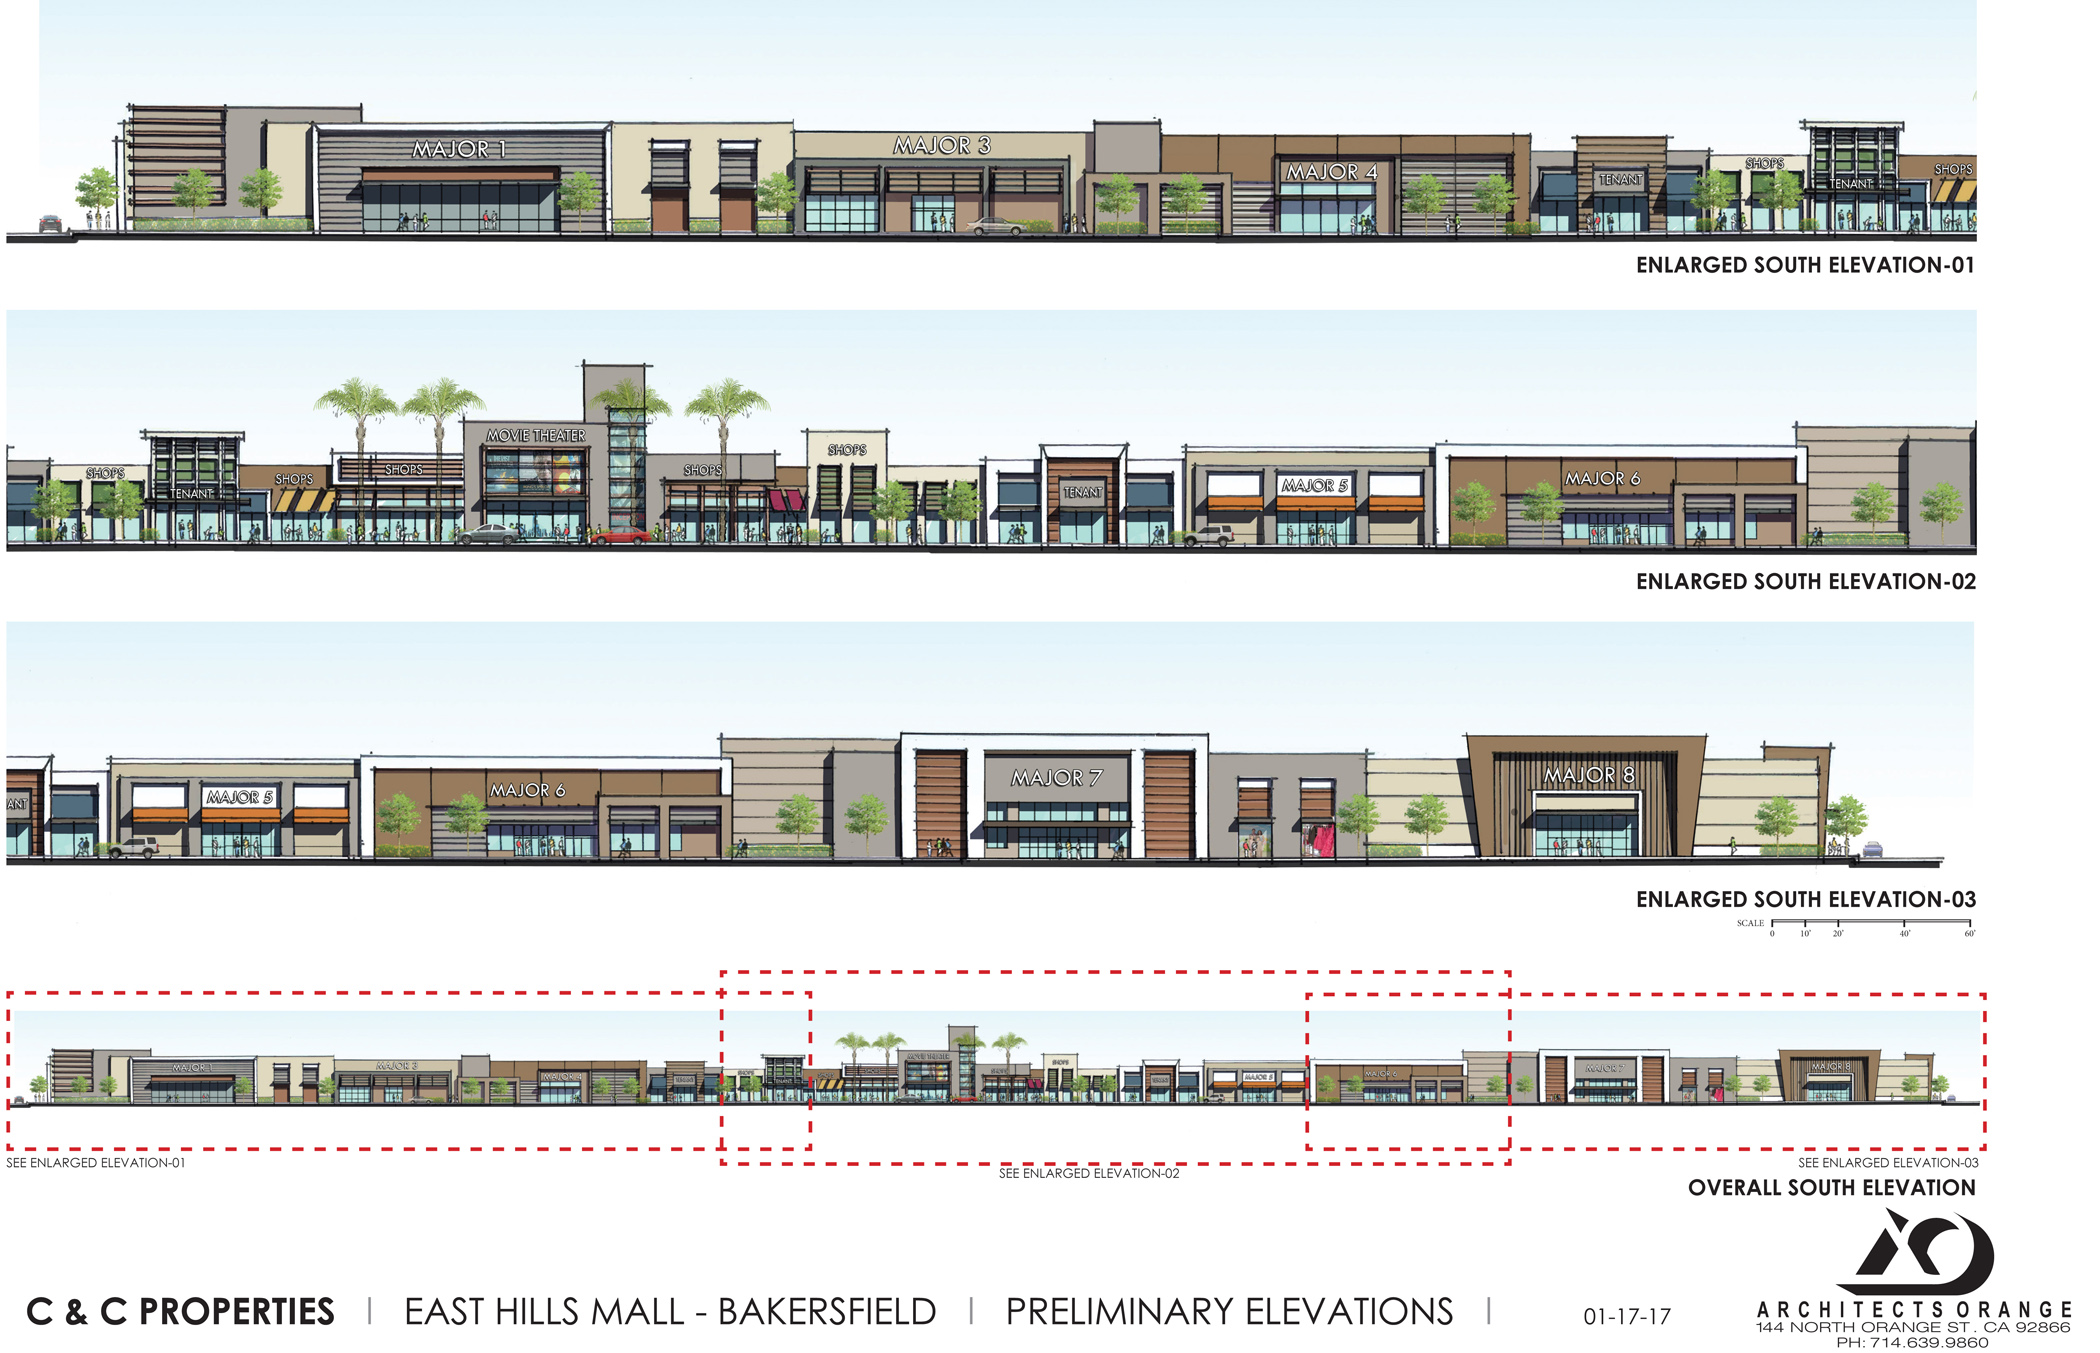 Preliminary elevations for the East Hills Mall in Bakersfield, Calif.